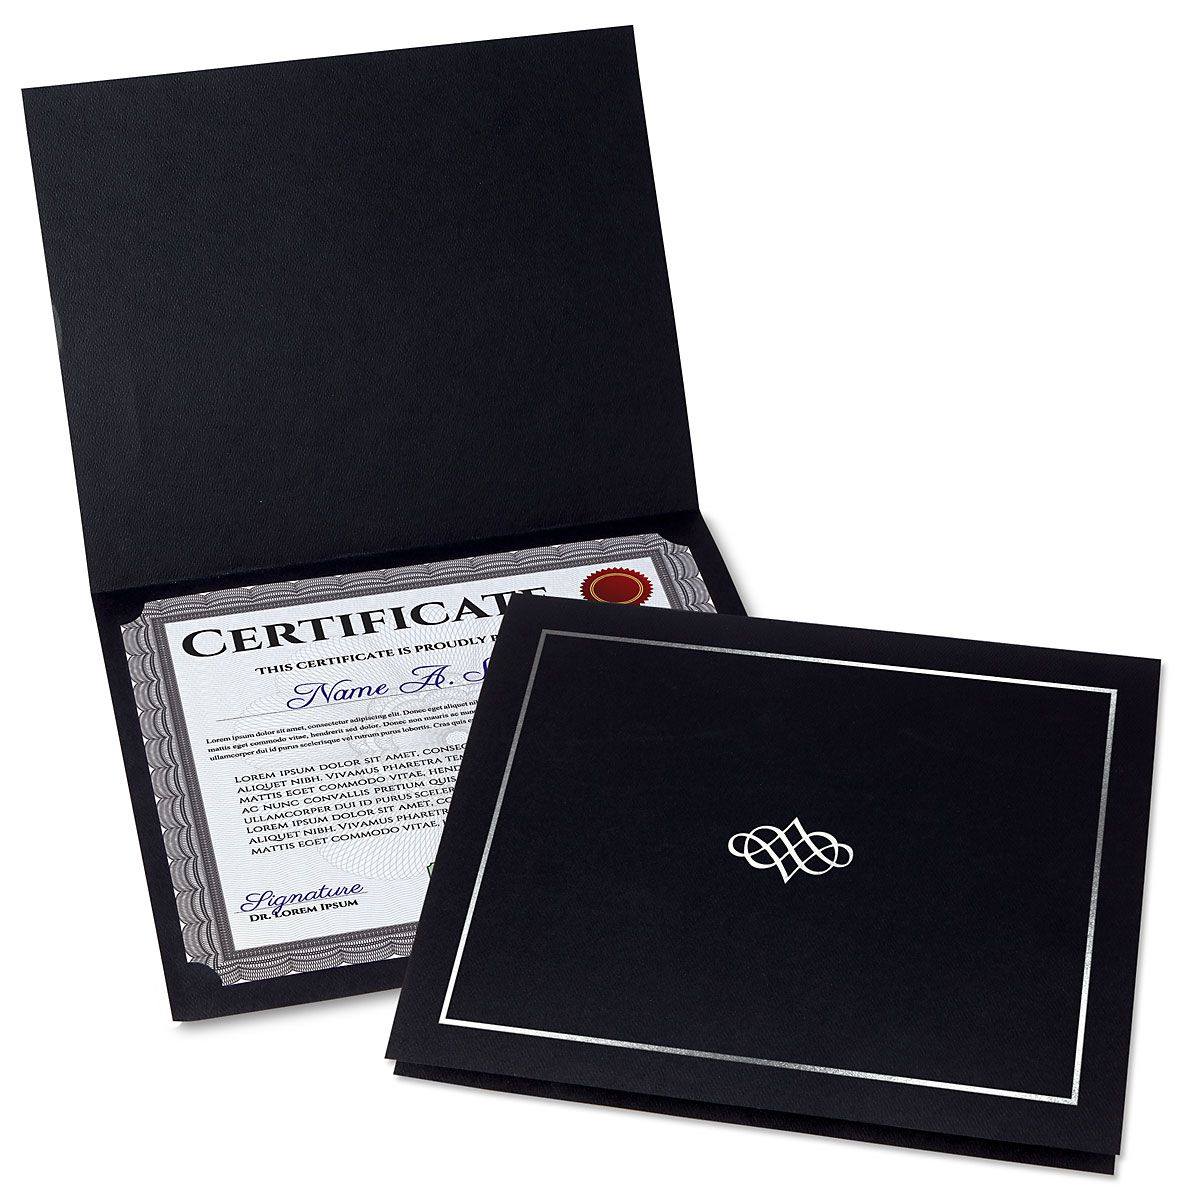 Ornate Black Certificate Folder with Silver Border/Crest - Set of 25